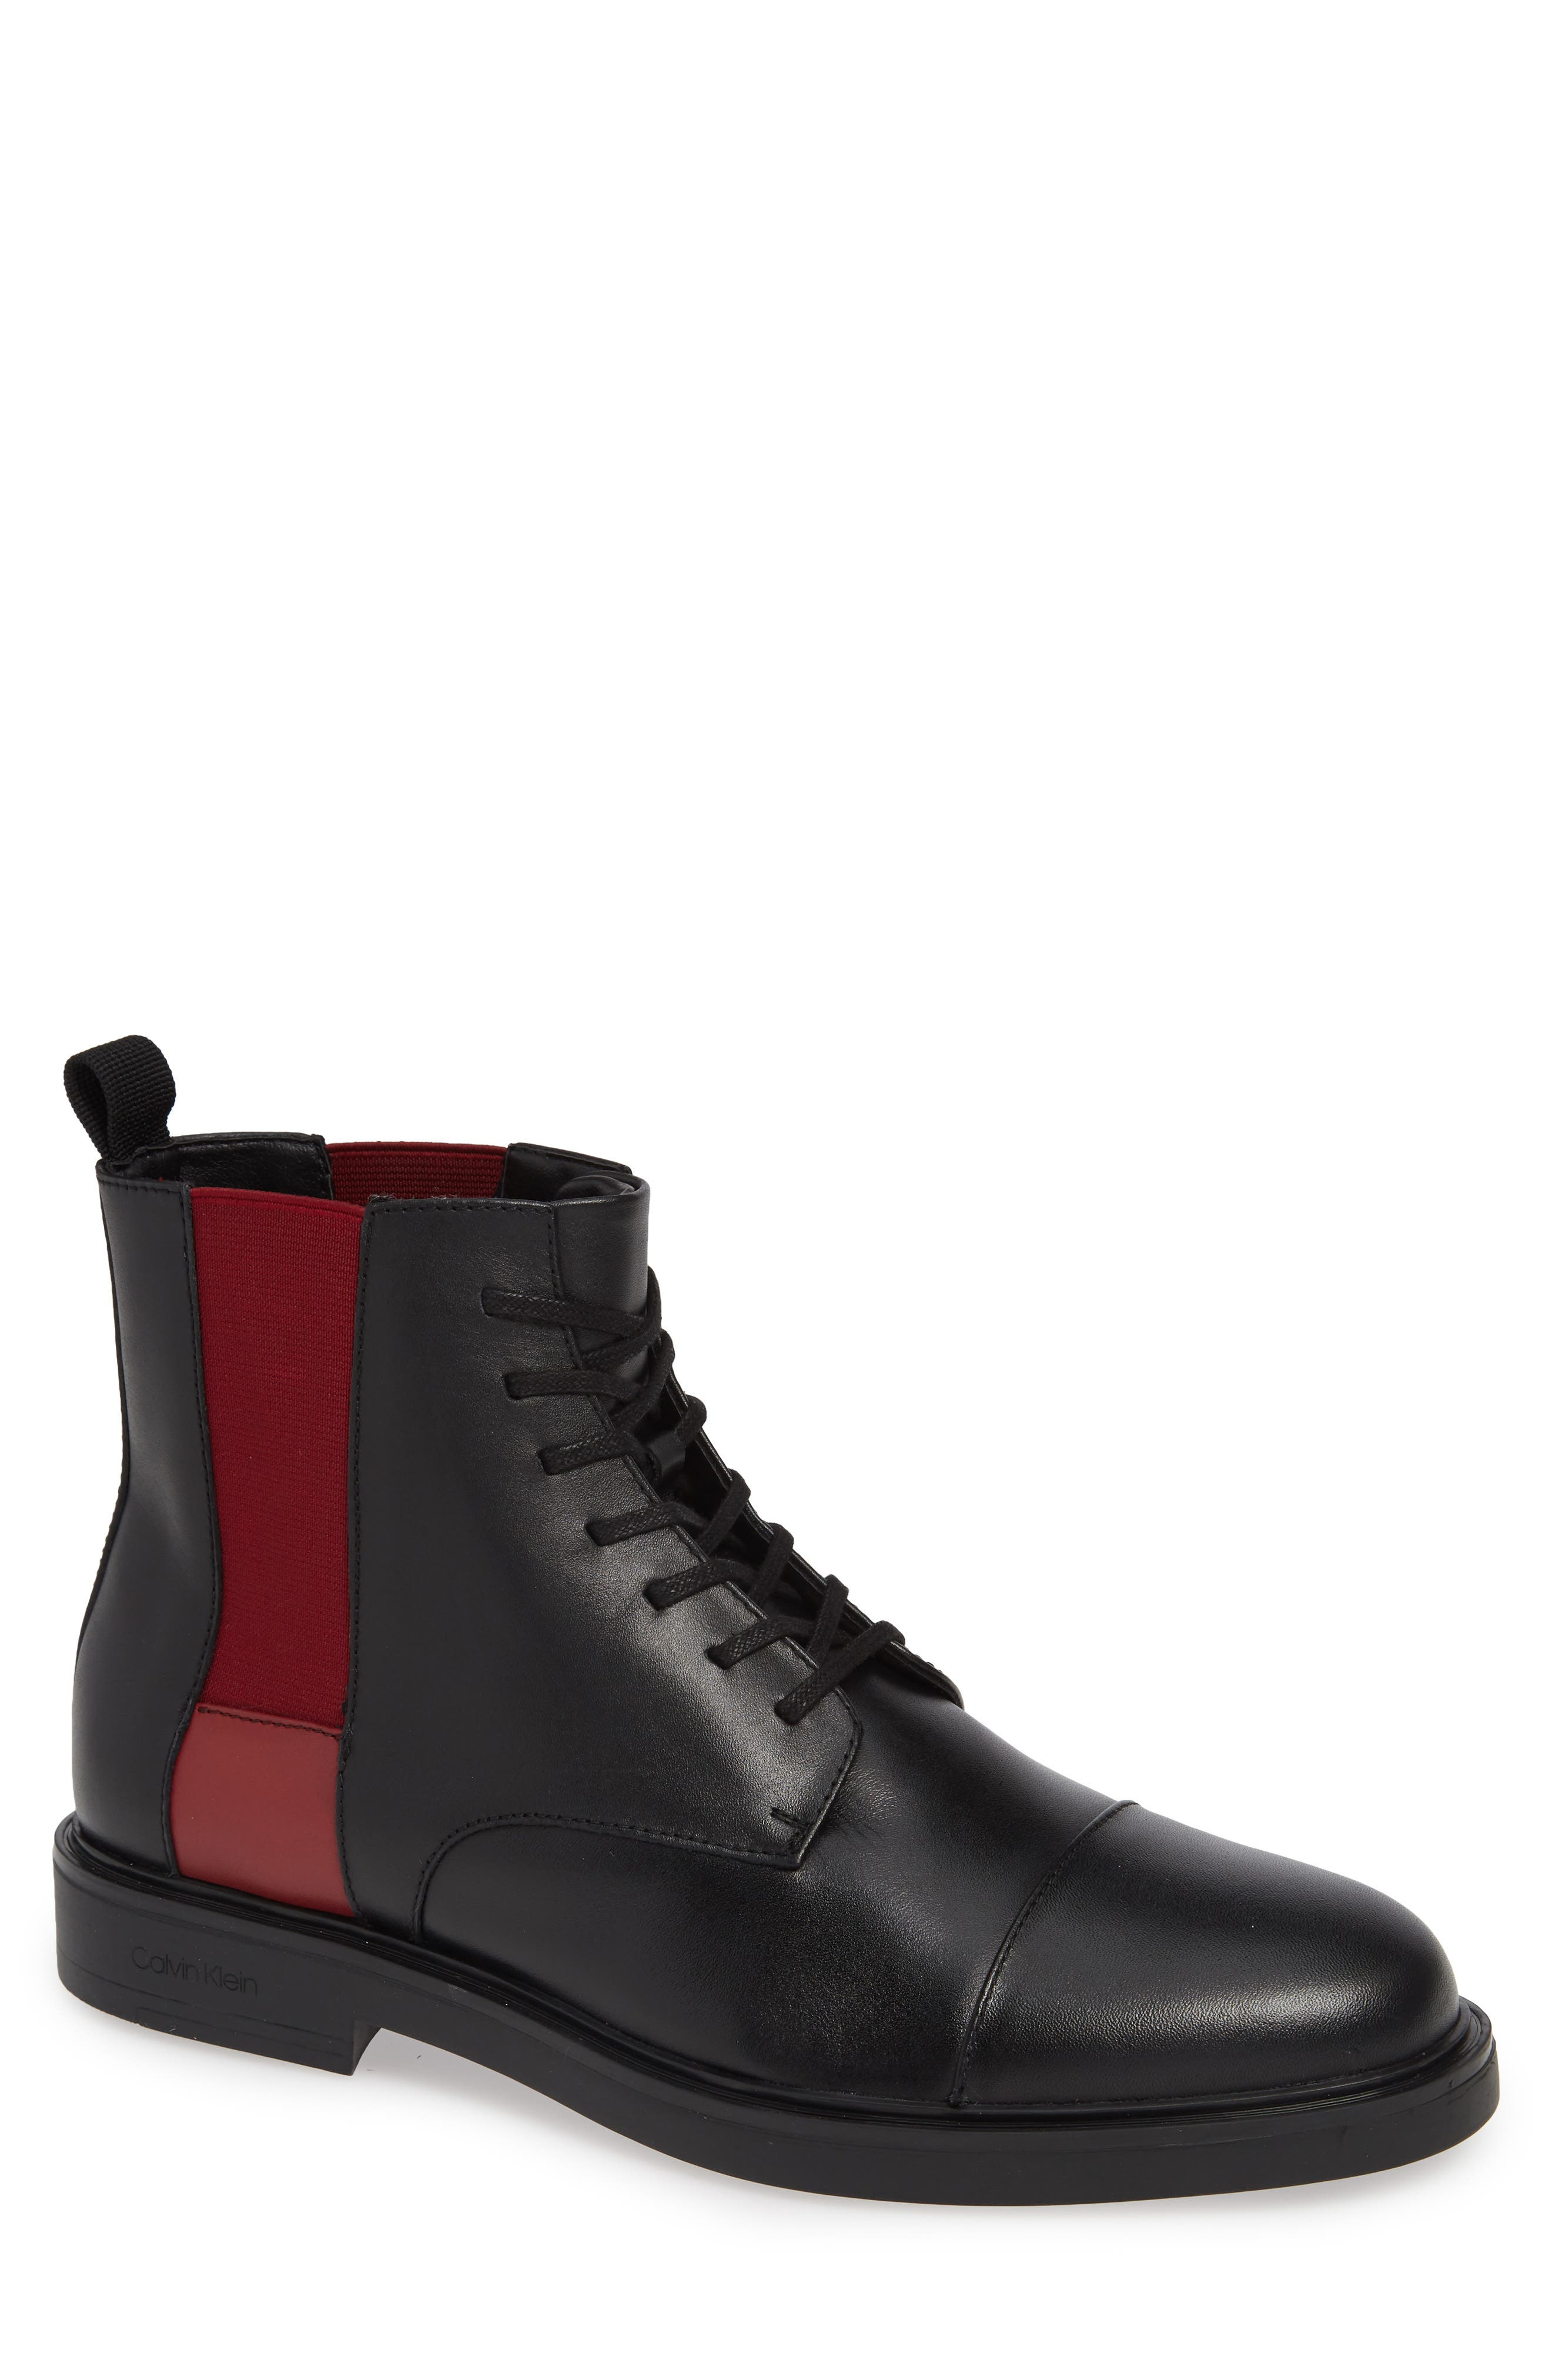 Dameon Lace-Up Boot,                         Main,                         color, BLACK/ RED ROCK LEATHER